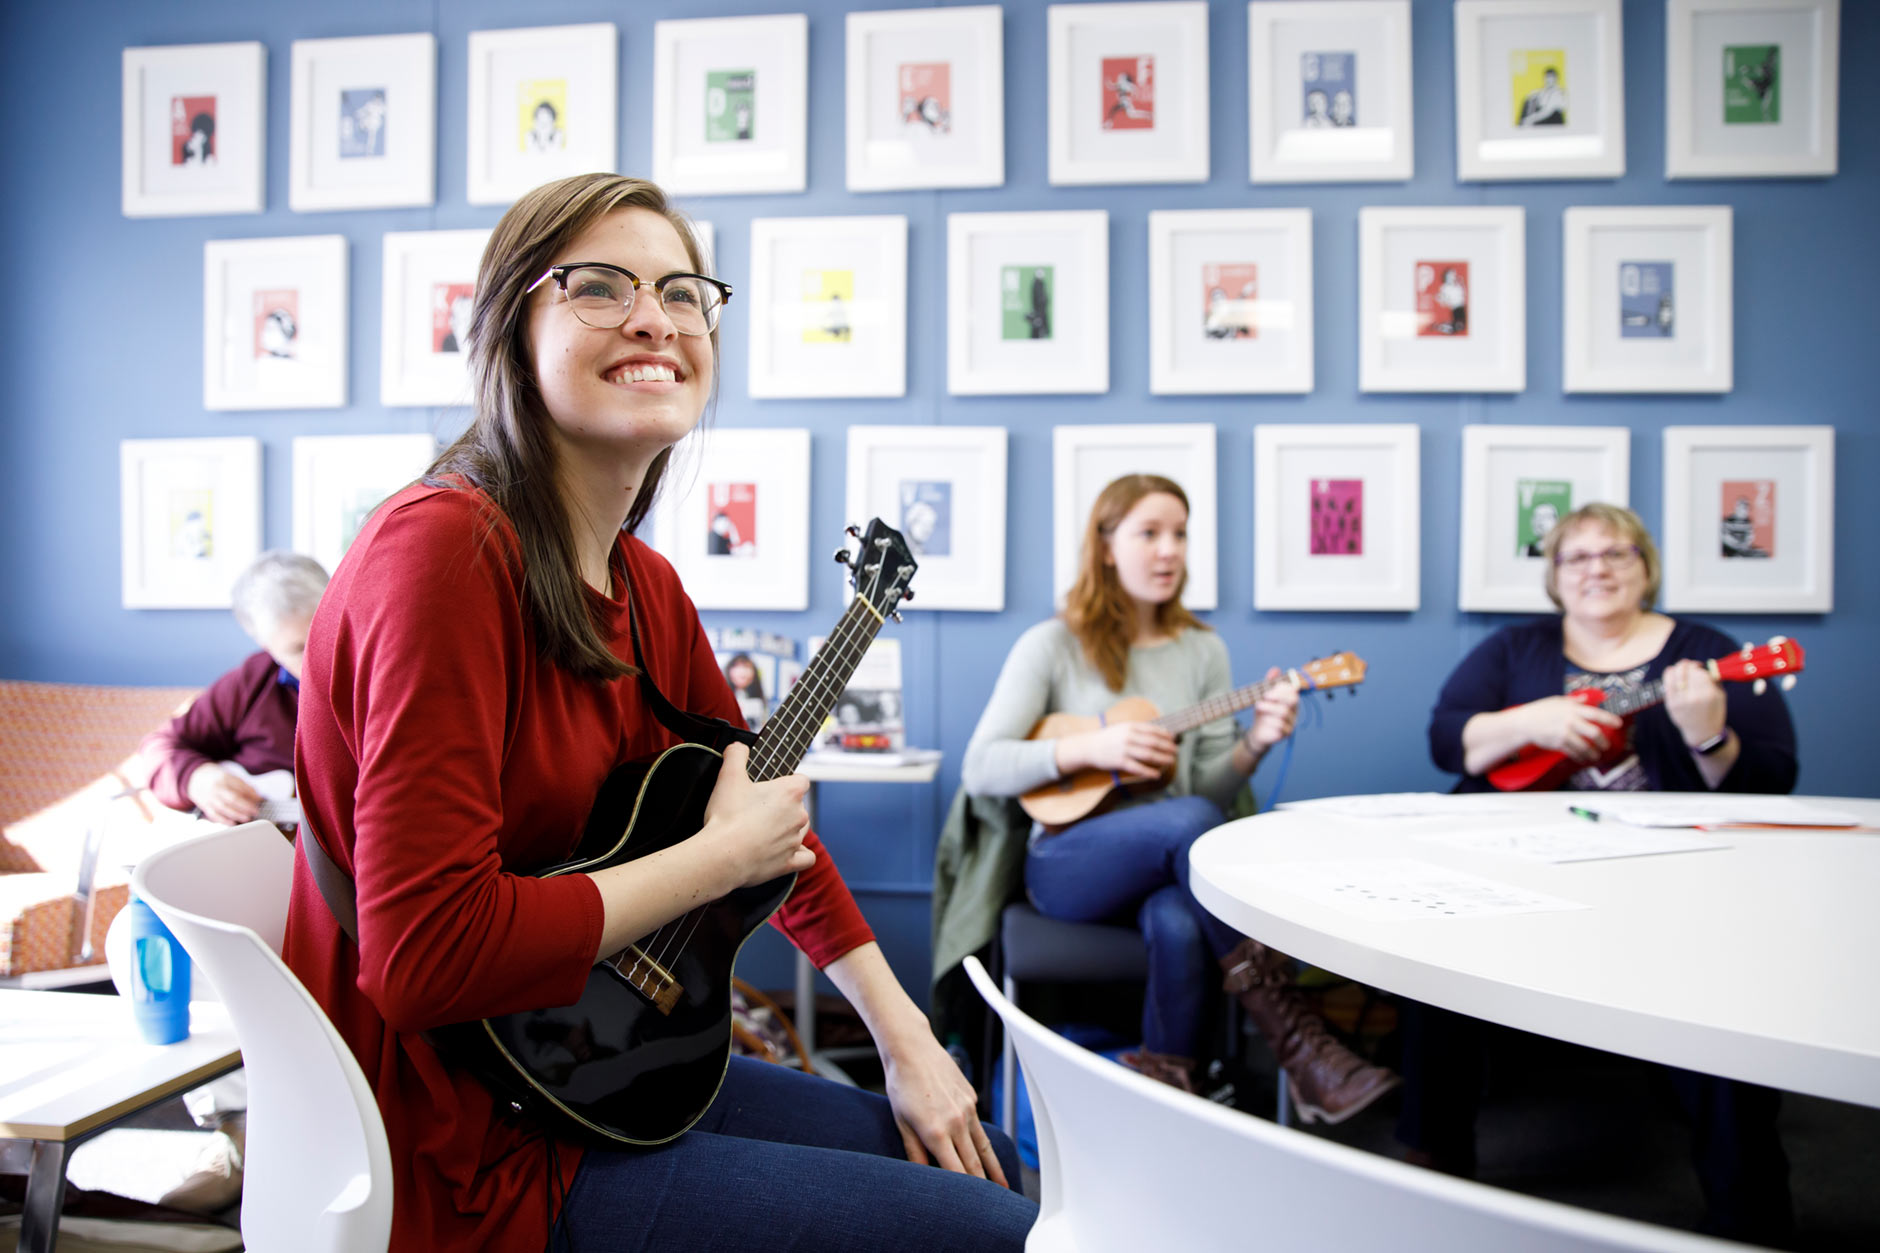 Emily Edwards, a graduating senior at IUPUC, shares a smile as she prepares for a ukulele club meeting on campus in Columbus on Thursday, April 5, 2018. (James Brosher/IU Communications)